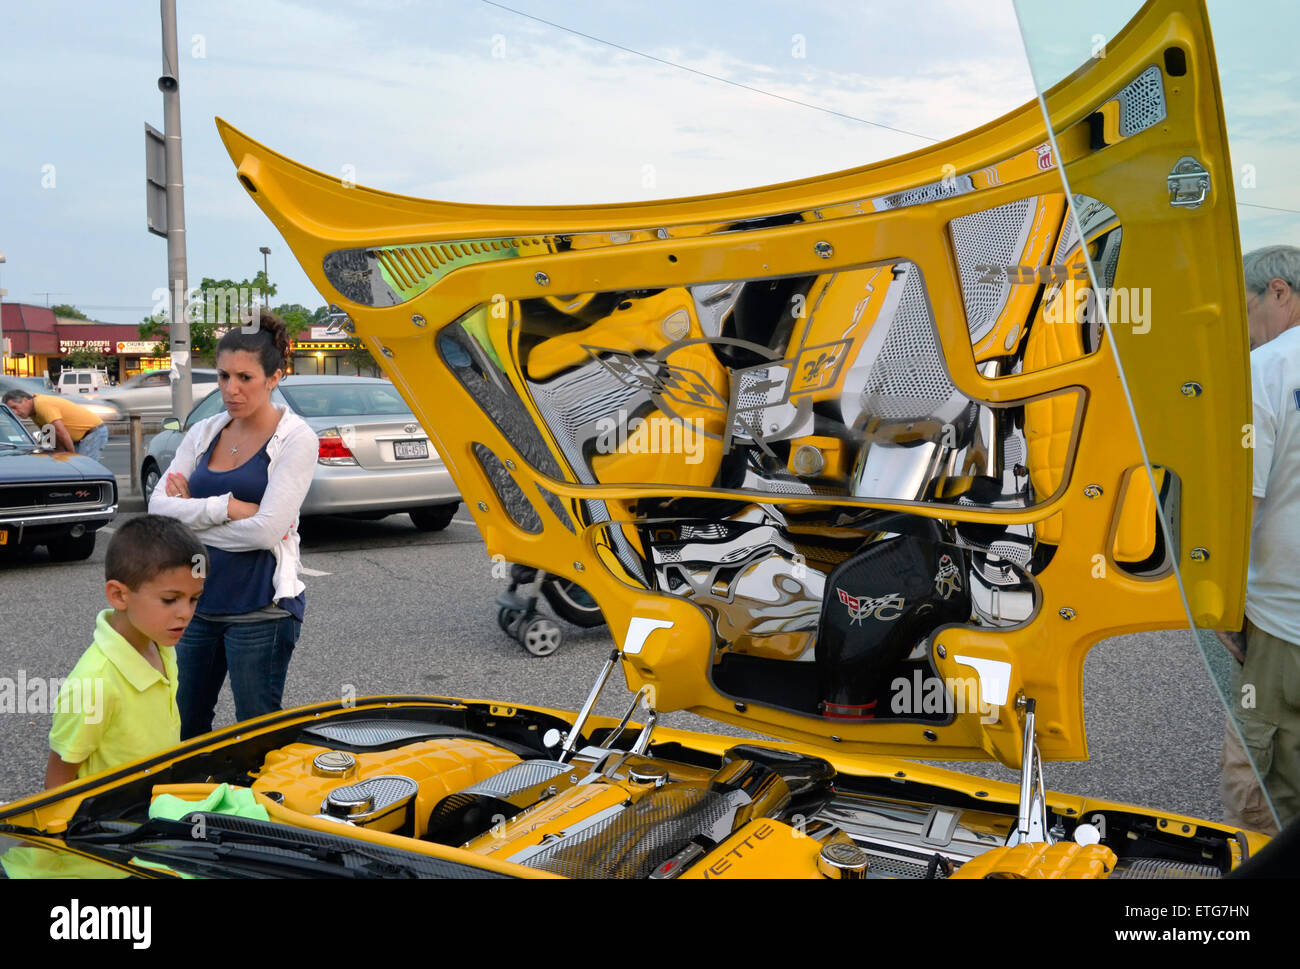 A family looks at a modified yellow 2003 Corvette 50th Anniversary model with Lamborghini doors (AKA vertical scissors doors and Lambo doors) whose ...  sc 1 st  Alamy & New York USA. 12th June 2015. A family looks at a modified yellow ...